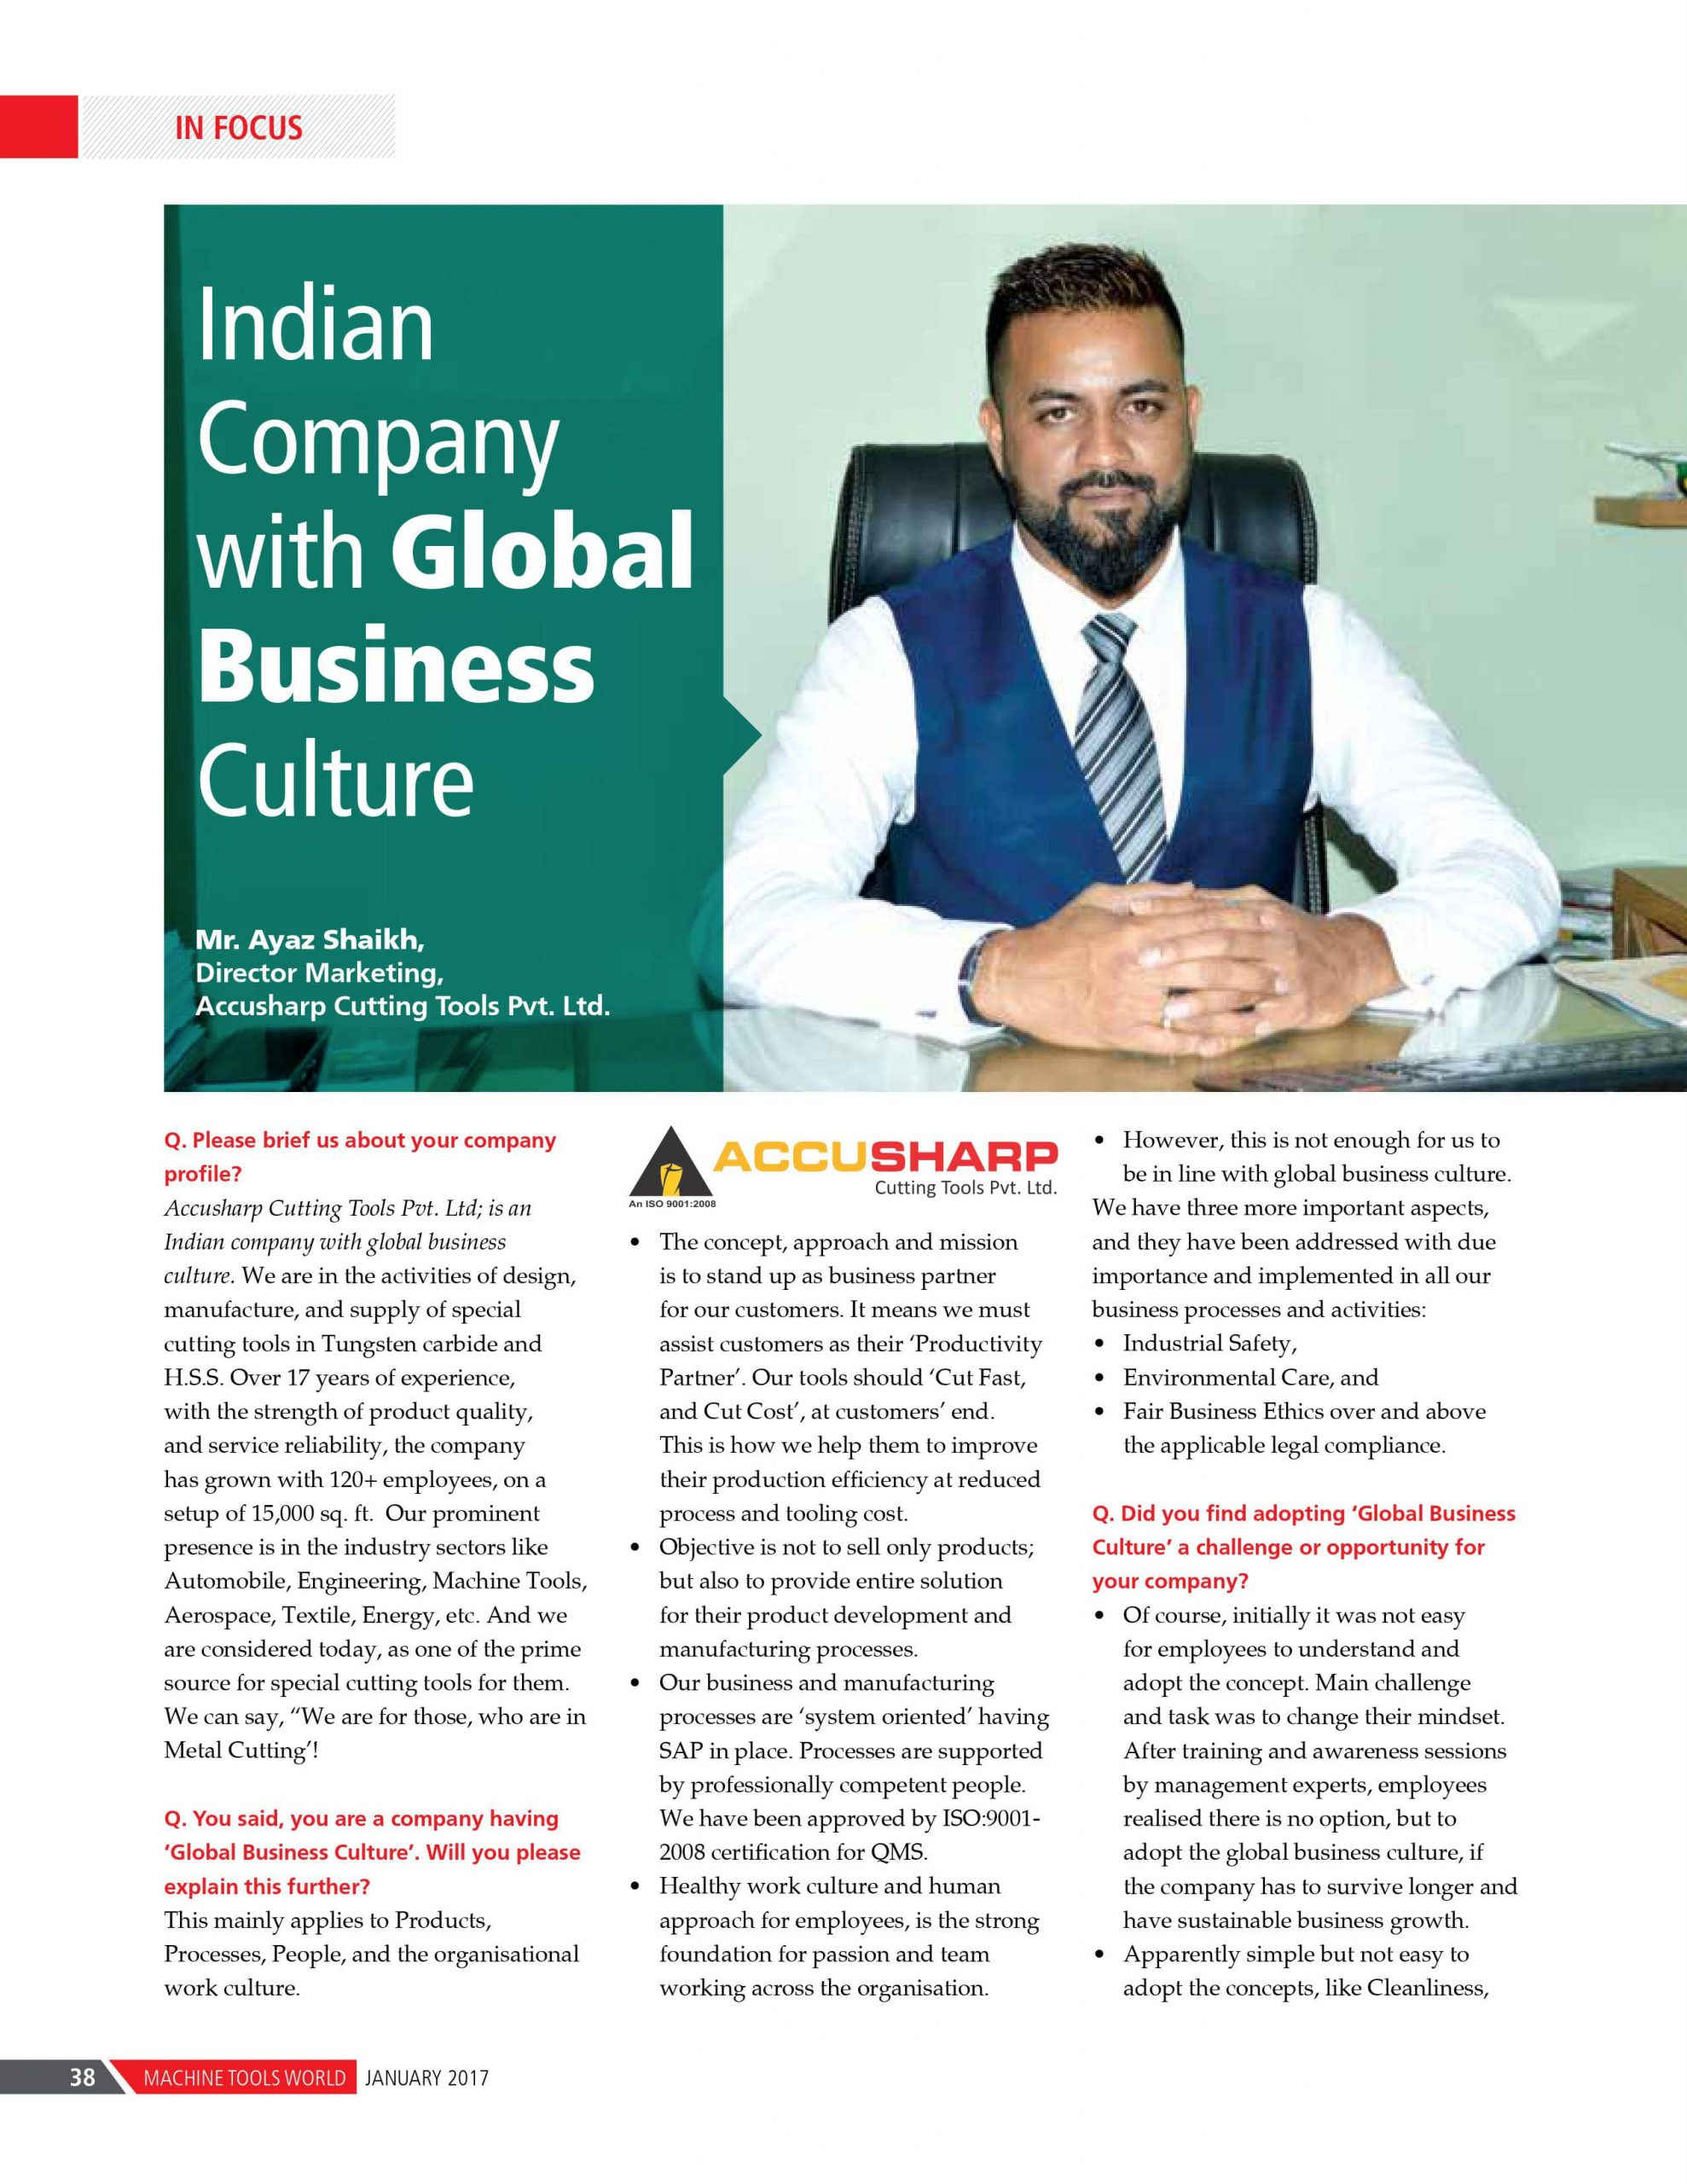 Indian Co with Global Business Culture